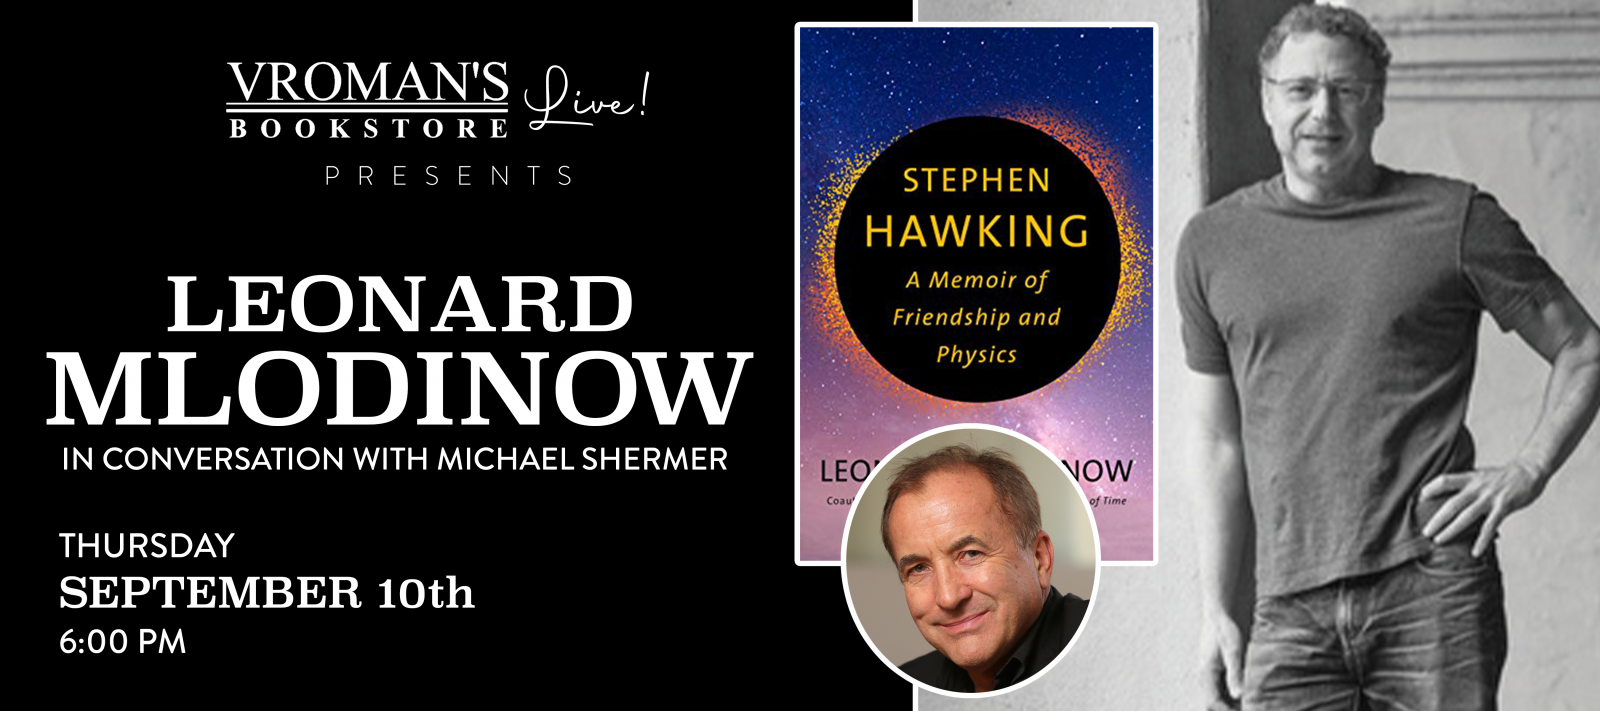 Vroman's Live presents Leonard Mlodinow, in conversation with Michael Shermer, on Thursday September 10 at 6pm